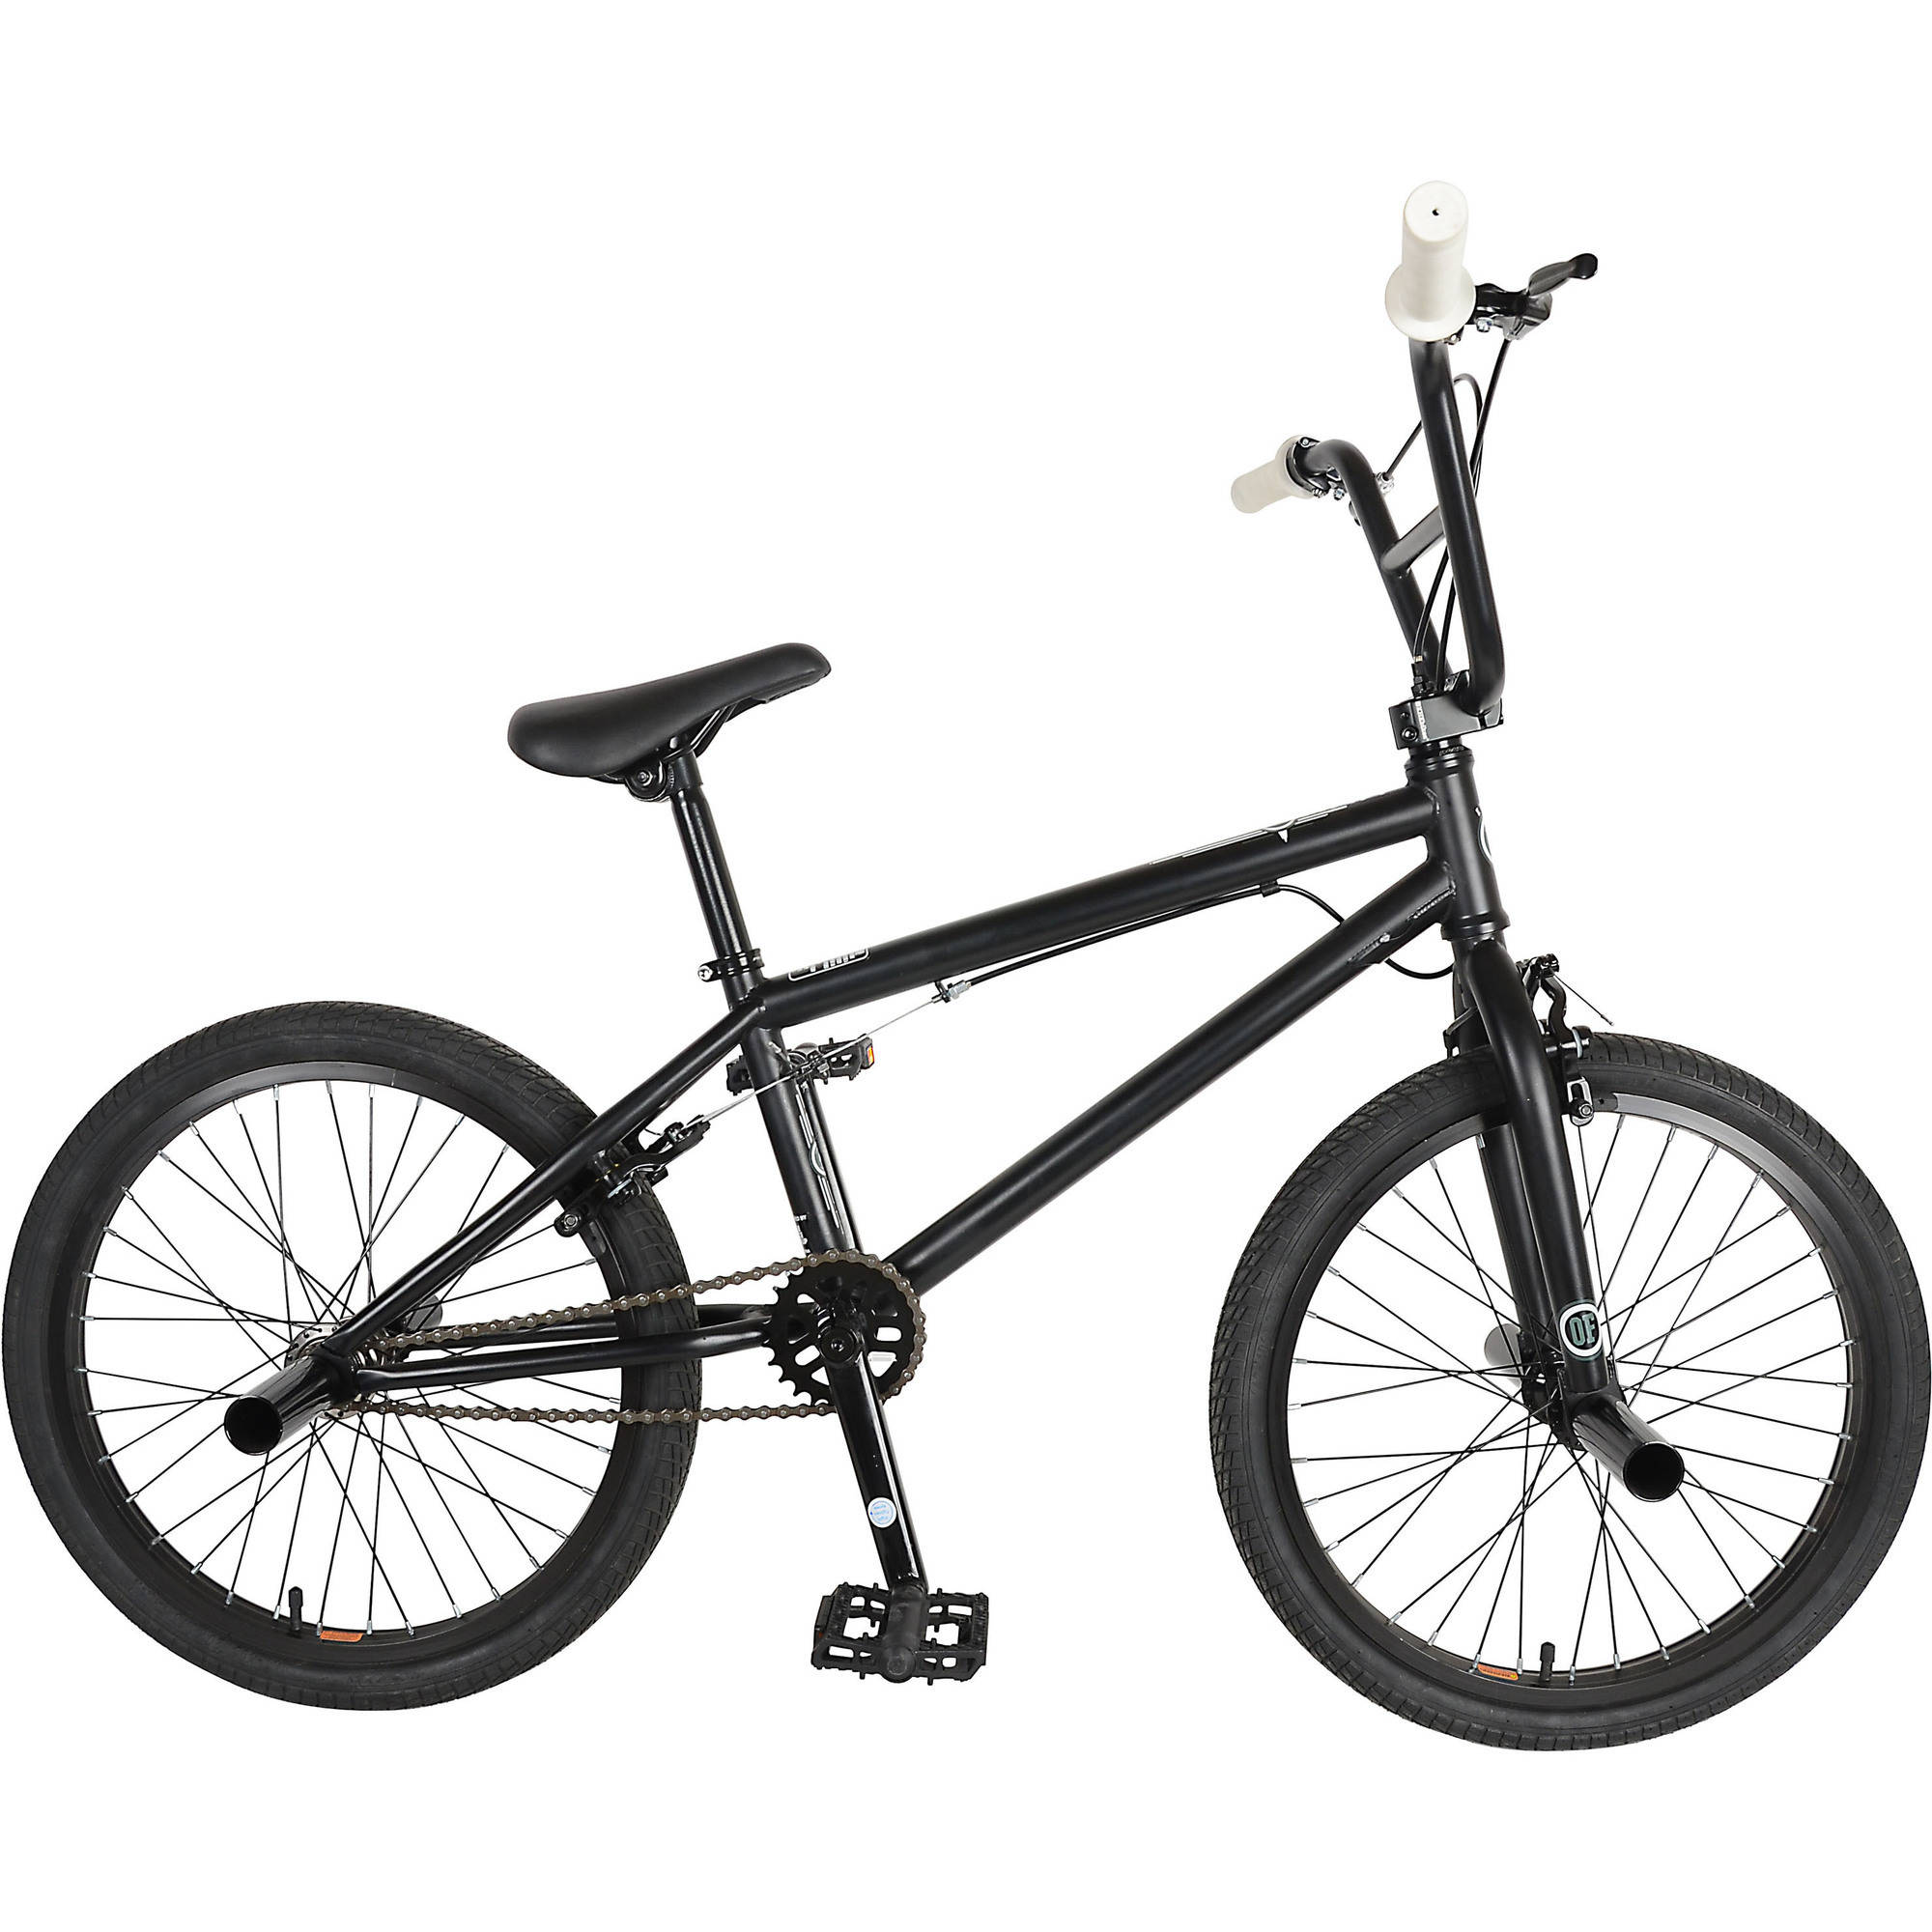 KHE Evo 0.F BMX Bicycle by Cycle Force Group